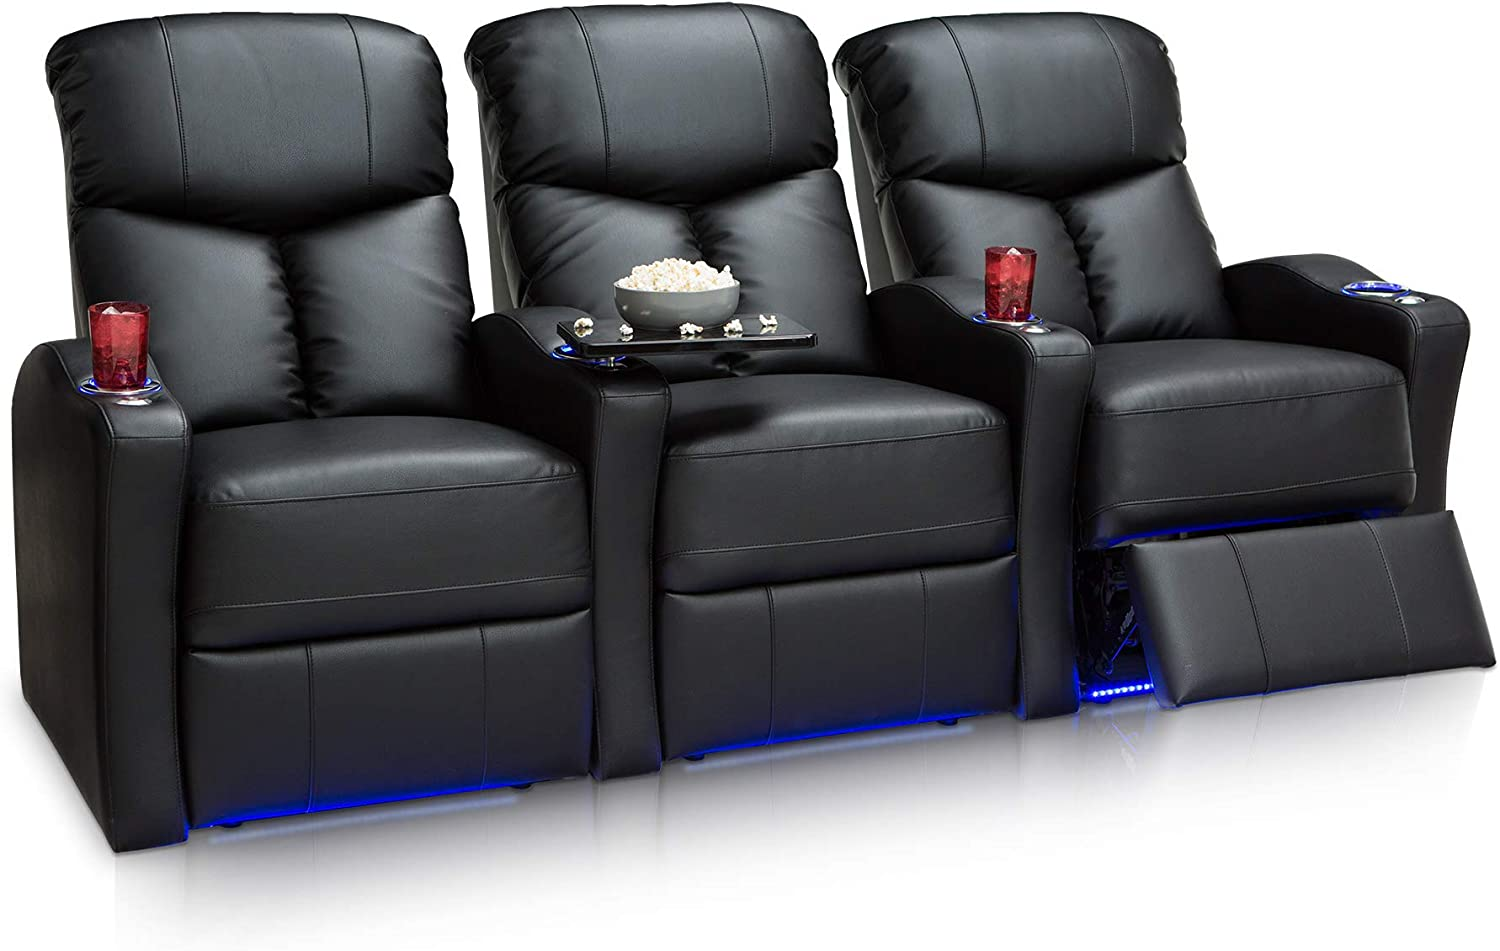 Seatcraft Raleigh Home Theater Seating Power Recline Leather Gel Row of 3, Black